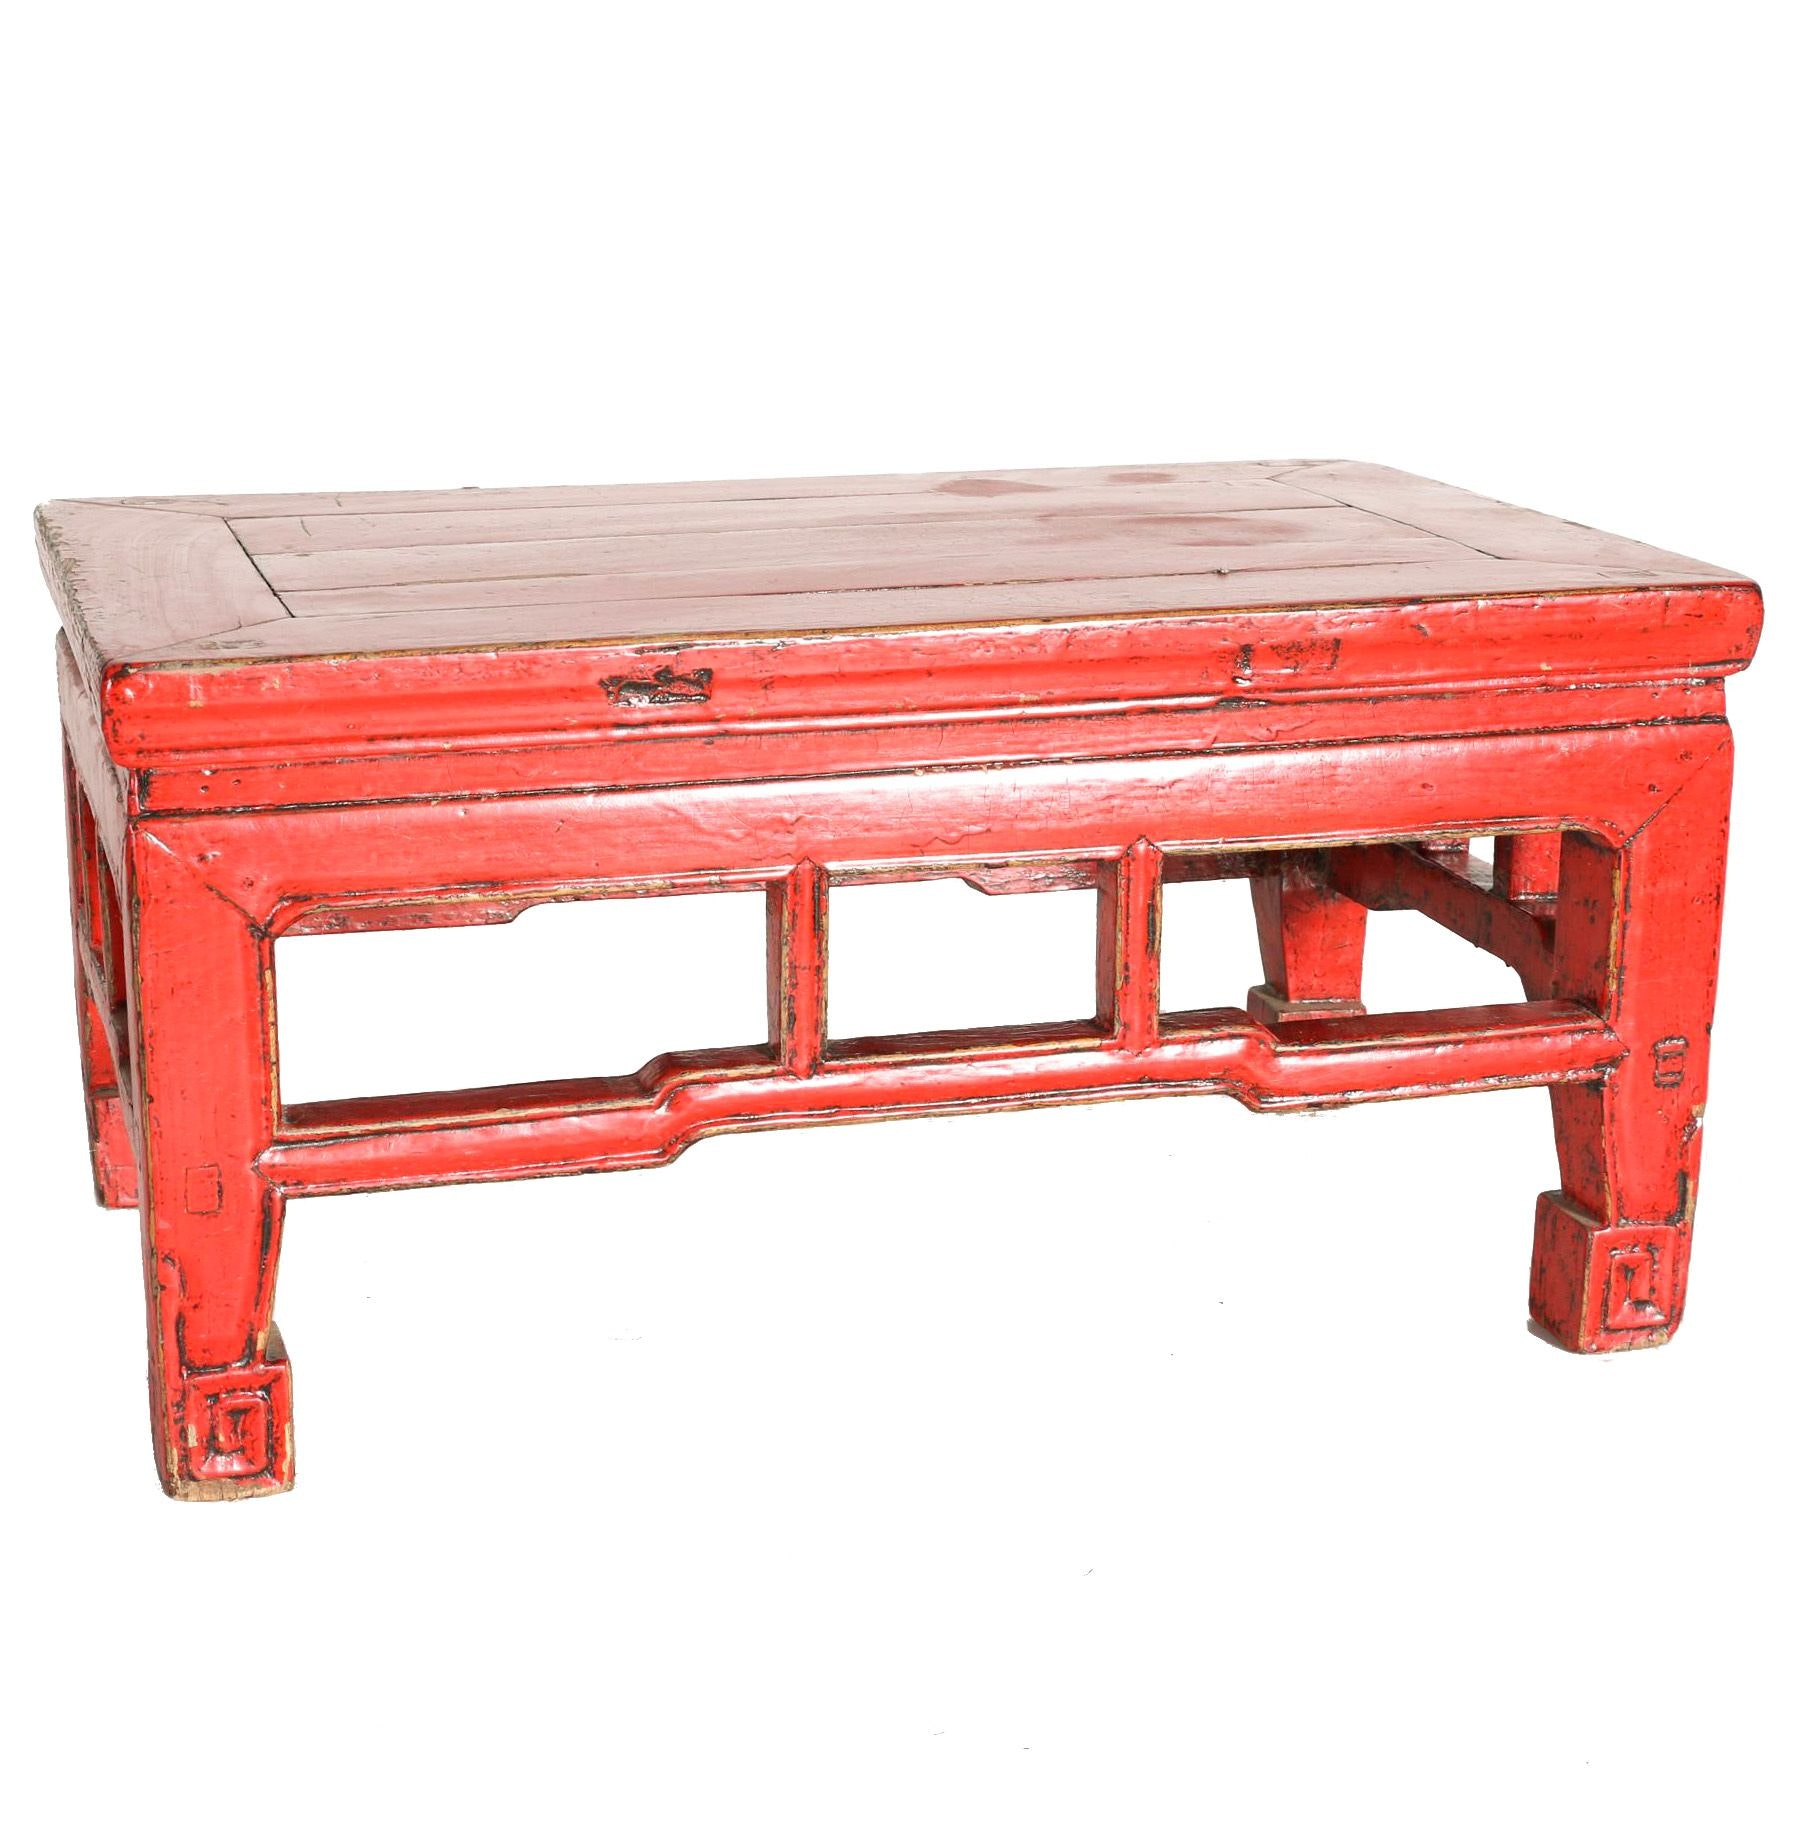 Vintage Chinese Wood Bench